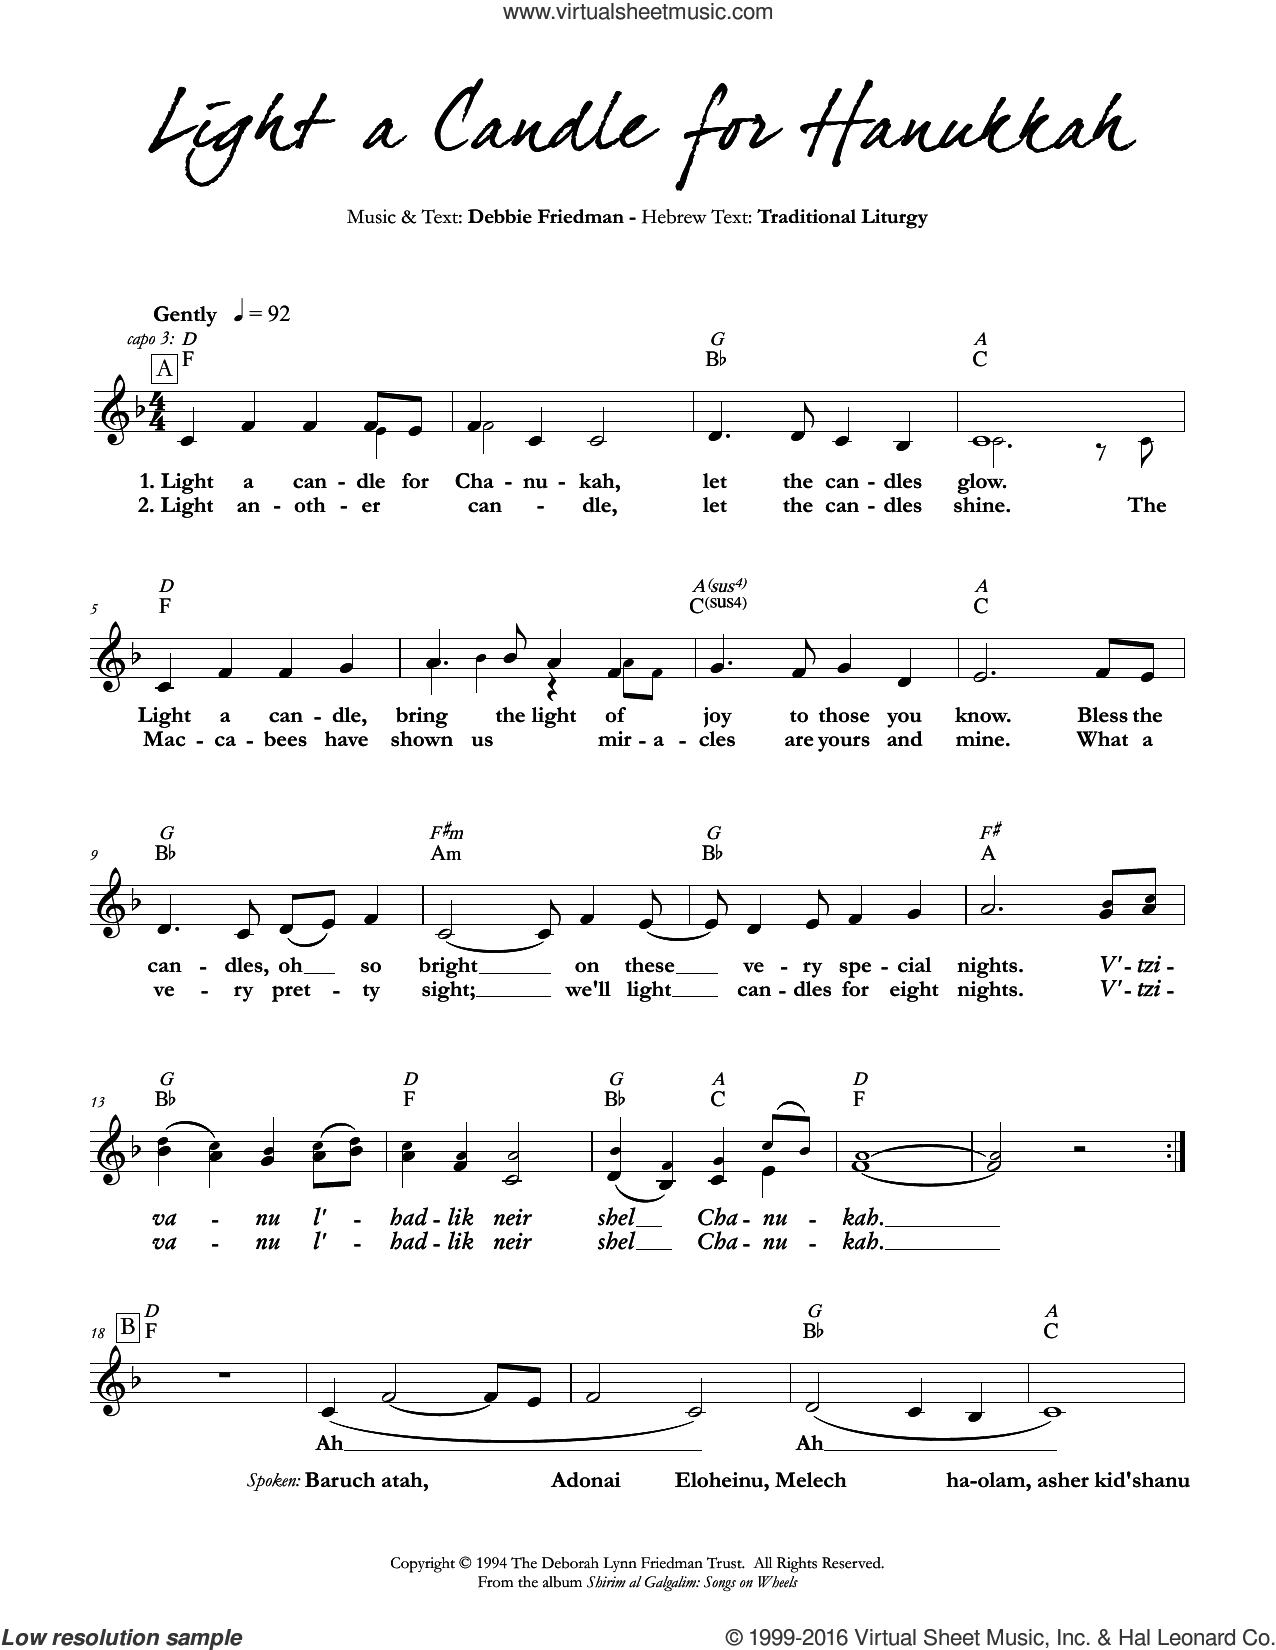 Light a Candle for Hanukkah sheet music for voice and other instruments (fake book) by Debbie Friedman, intermediate skill level